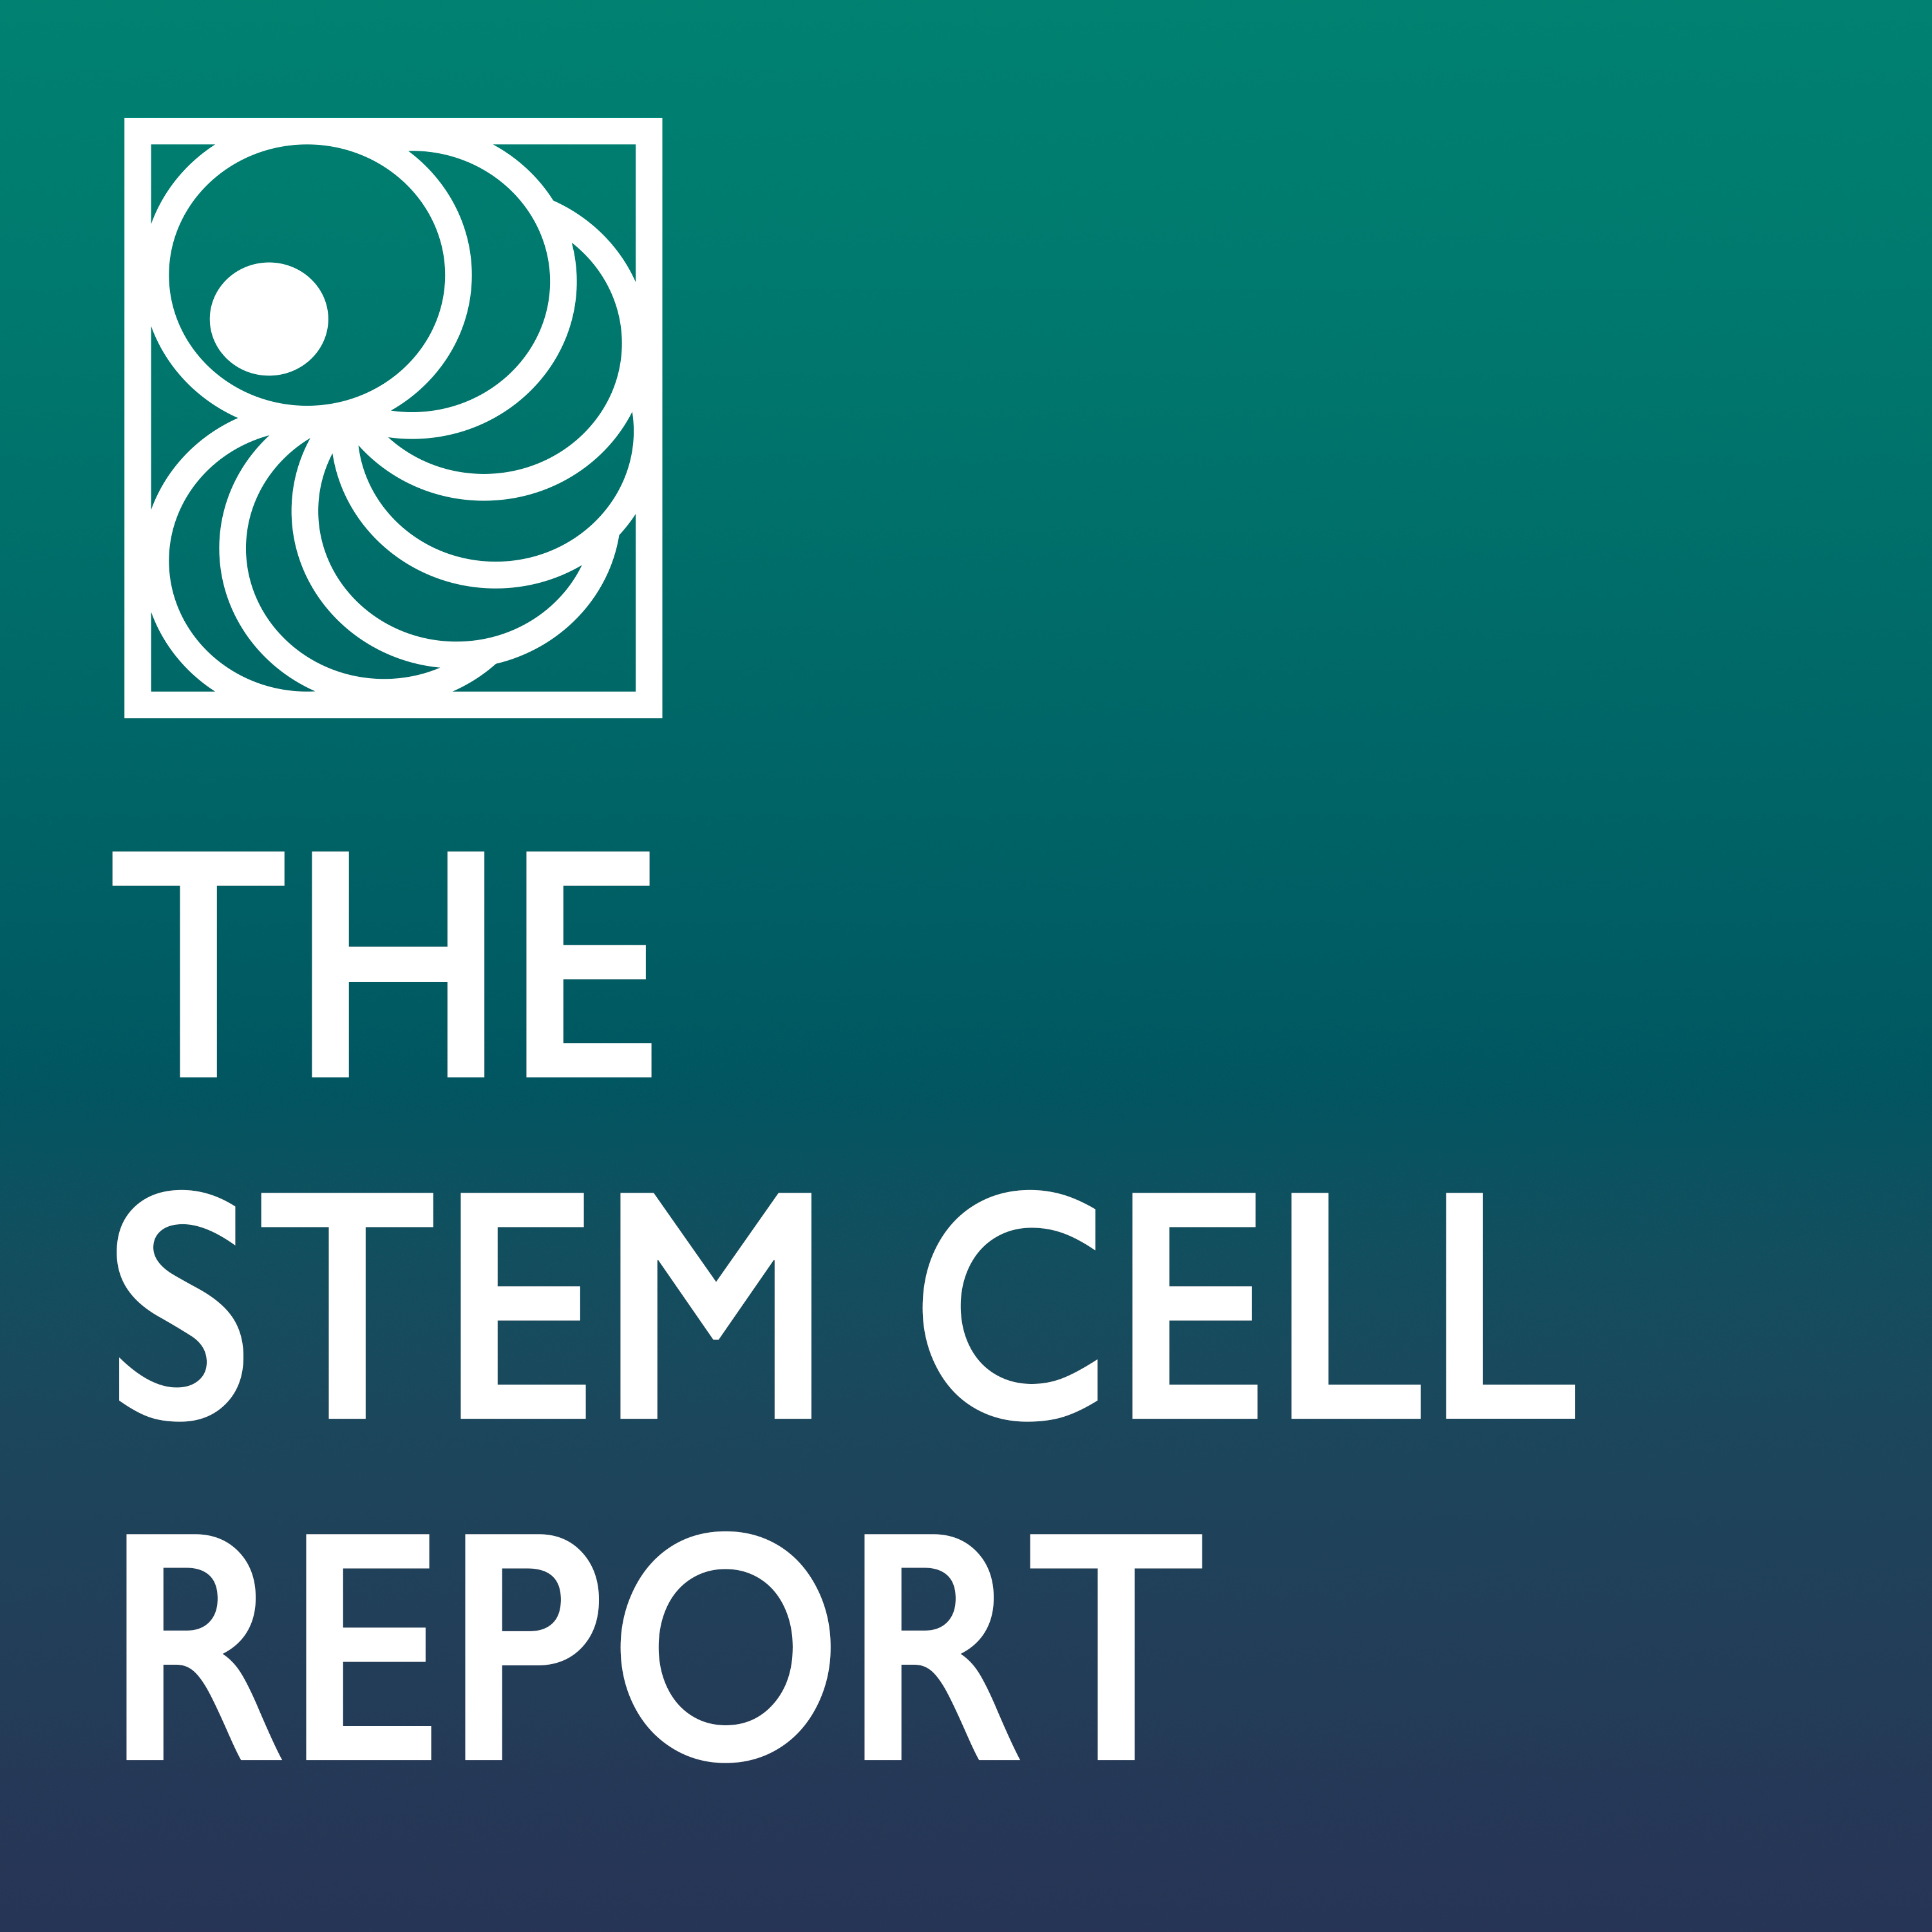 The Stem Cell Report with Martin Pera